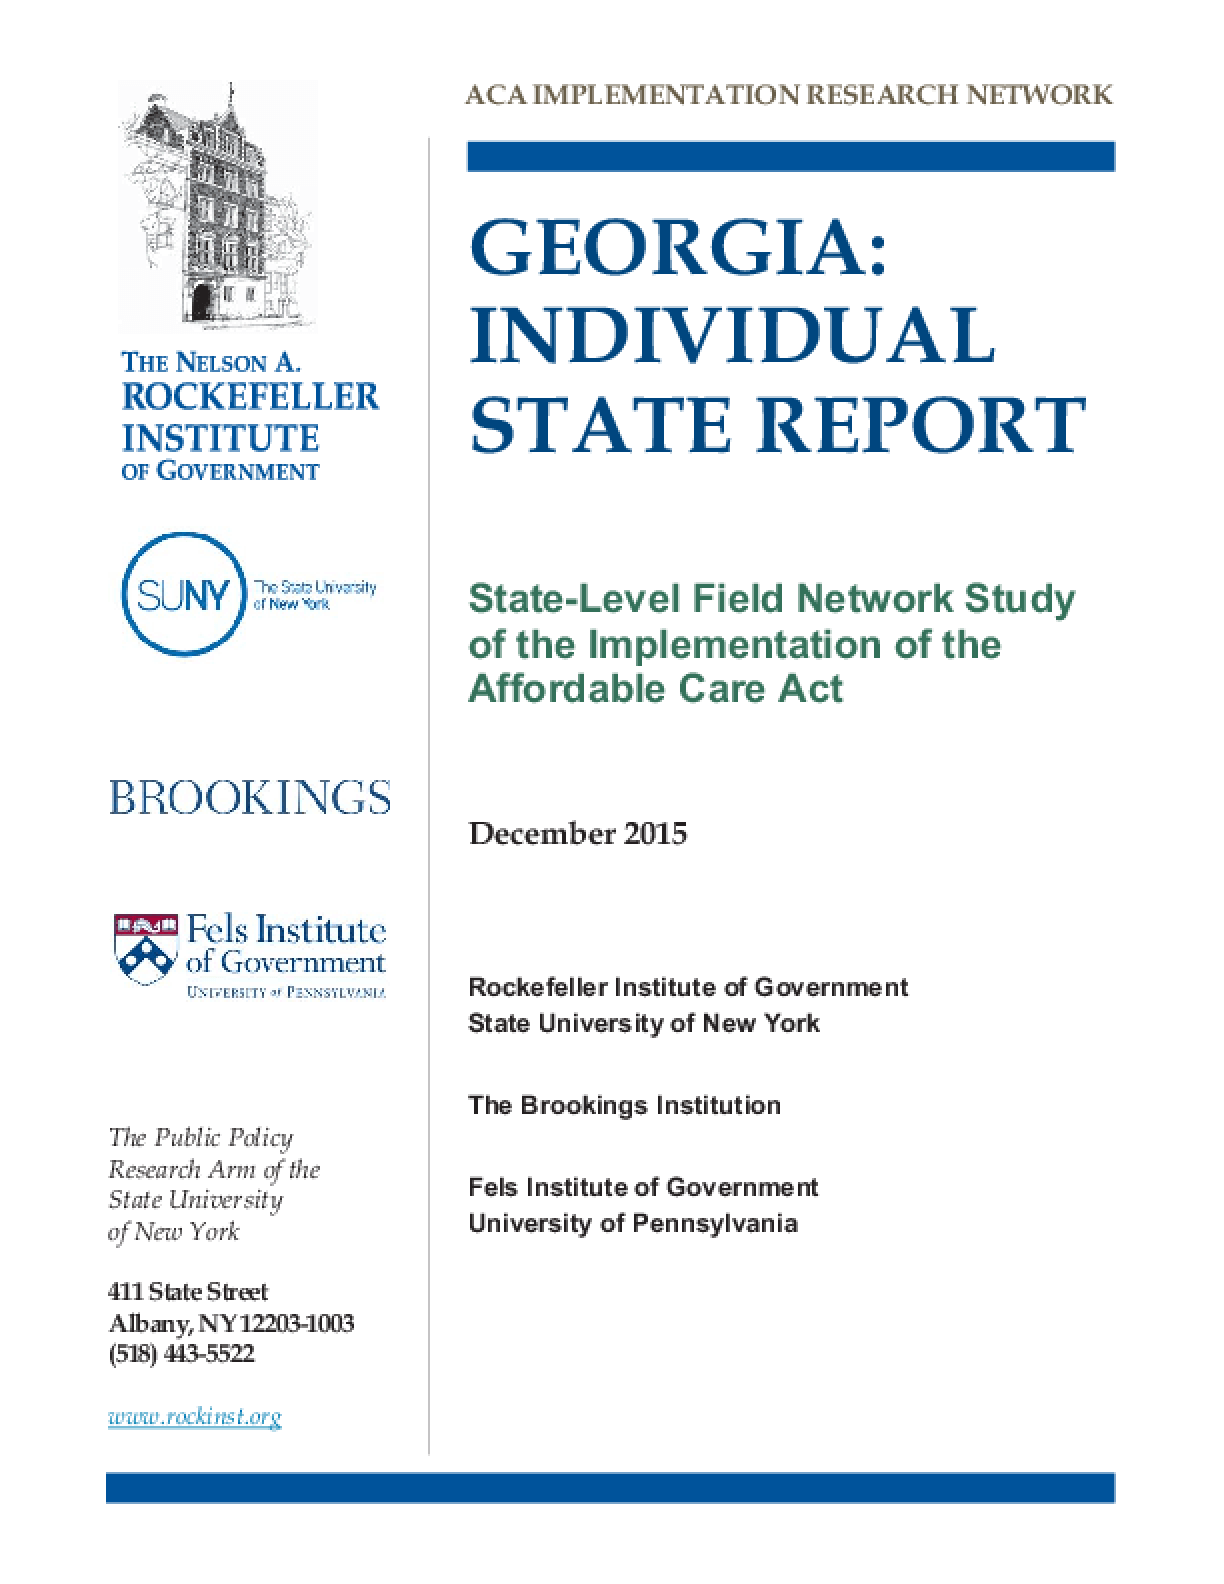 Georgia: Individual State Report - State-level Field Network Study of the Implementation of the Affordable Care Act